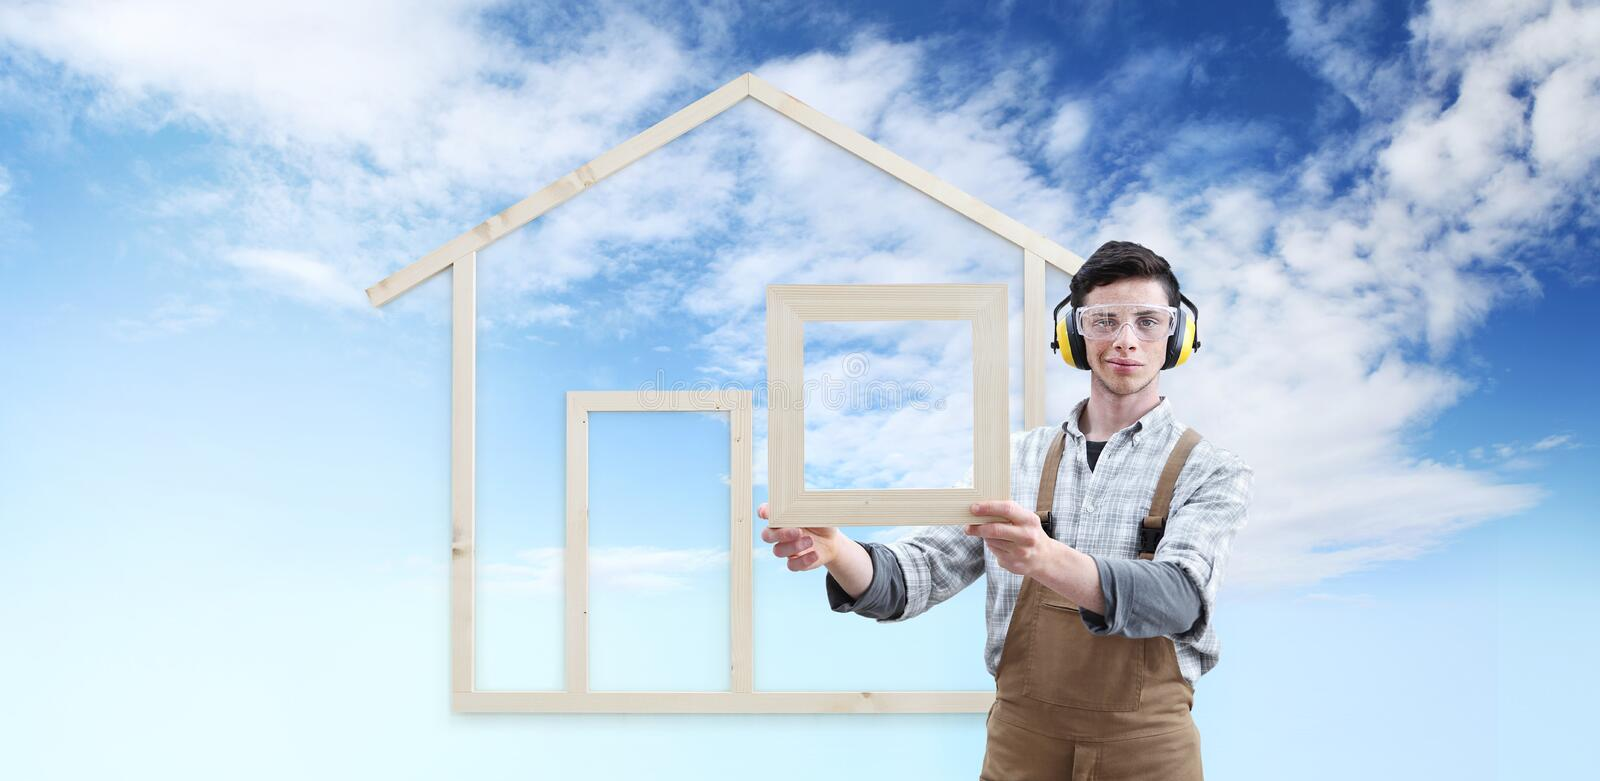 House construction renovation concept handyman carpenter man show the model of a wooden house isolated on blue sky background, stock photography